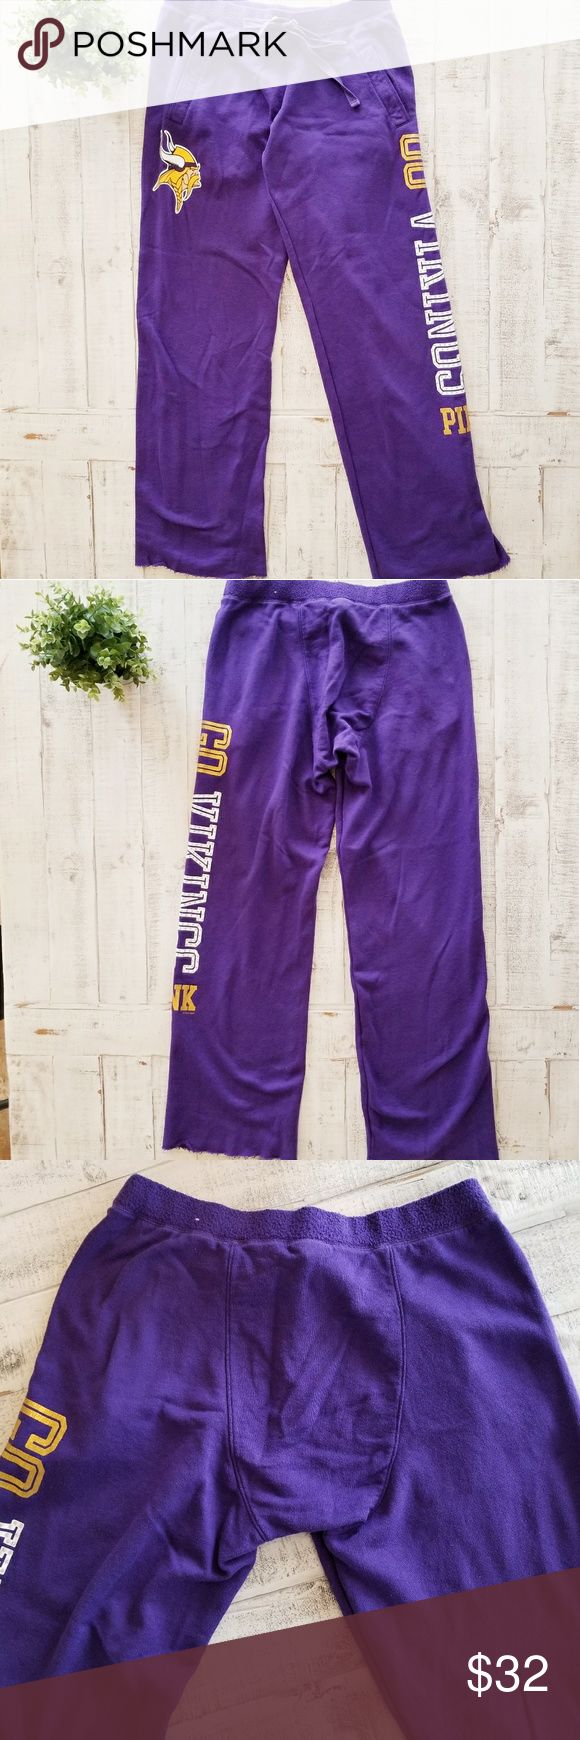 Victoria's Secret Pink NFL Vikings Sweat Pants Adorable Victoria's Secret Pink NFL Vikings purple sweat pants! These sweats are so comfy! The waist, front pockets, bedazzled writing, and raw edge hem! These are in great shape with just a little cracking on the gold letters shown in picture.  *measurements are approximate  Waist: 16 inches  Rise: 11.5 inches  Inseam: 33 inches PINK Victoria's Secret Pants Track Pants & Joggers